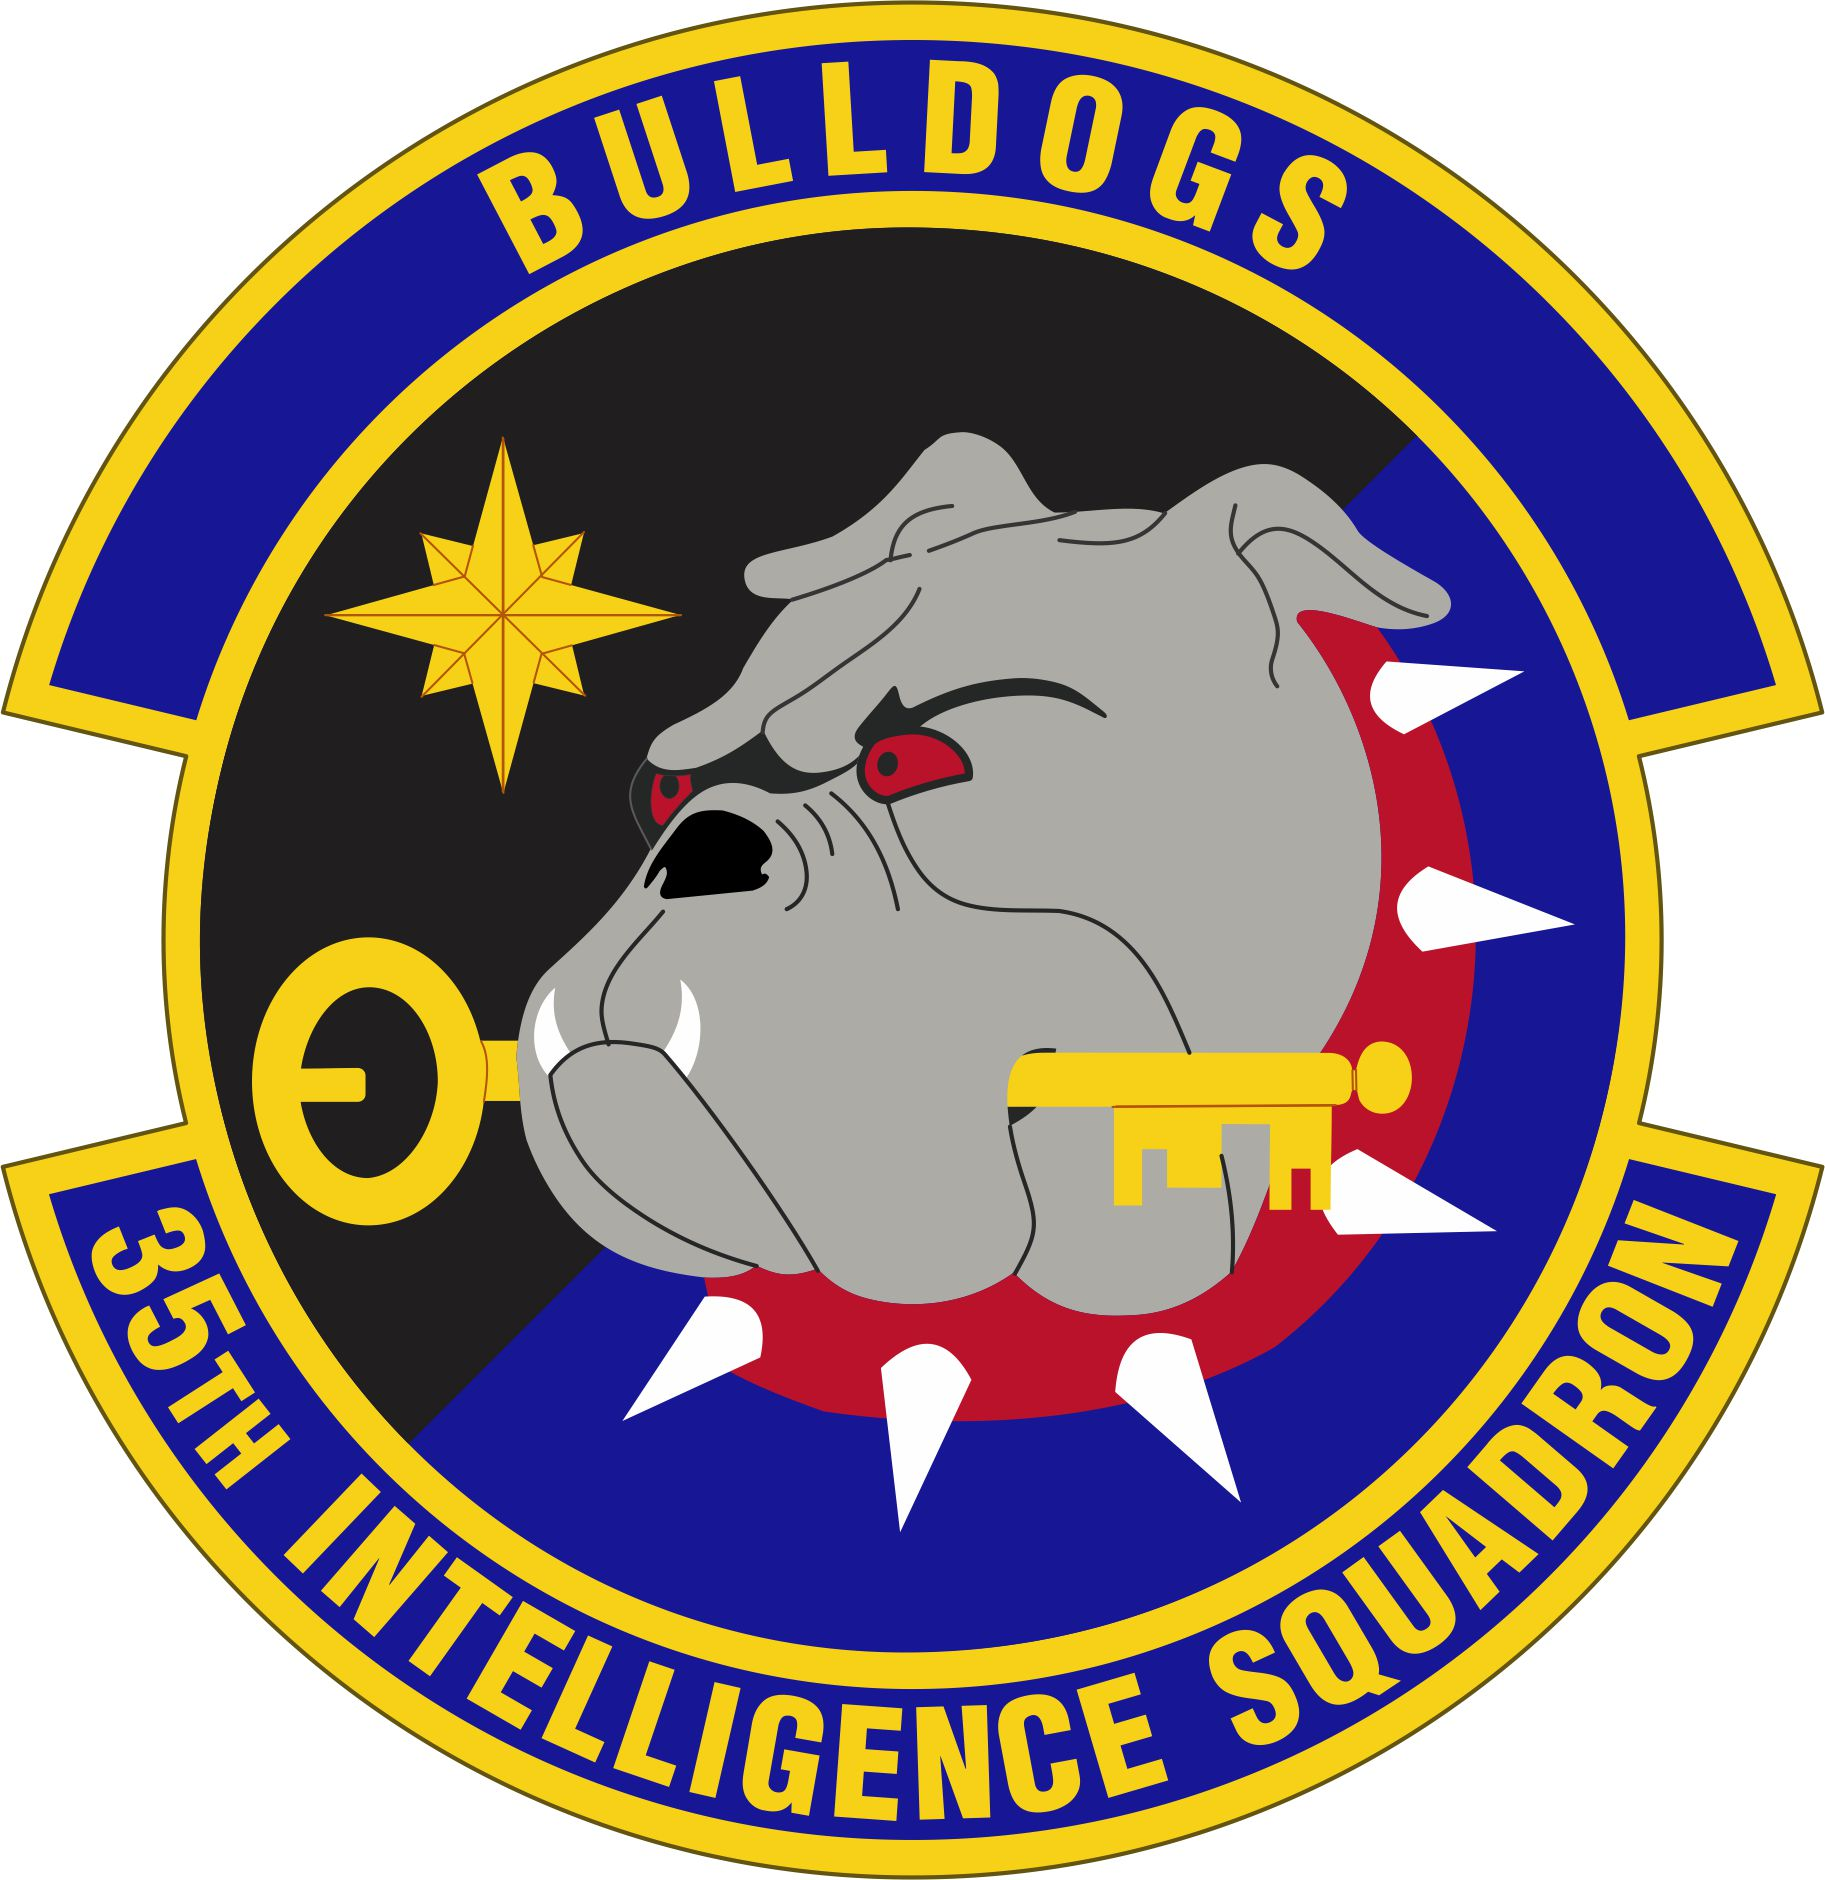 35 Intelligence Squadron Afisra Air Force Historical Research Agency Display